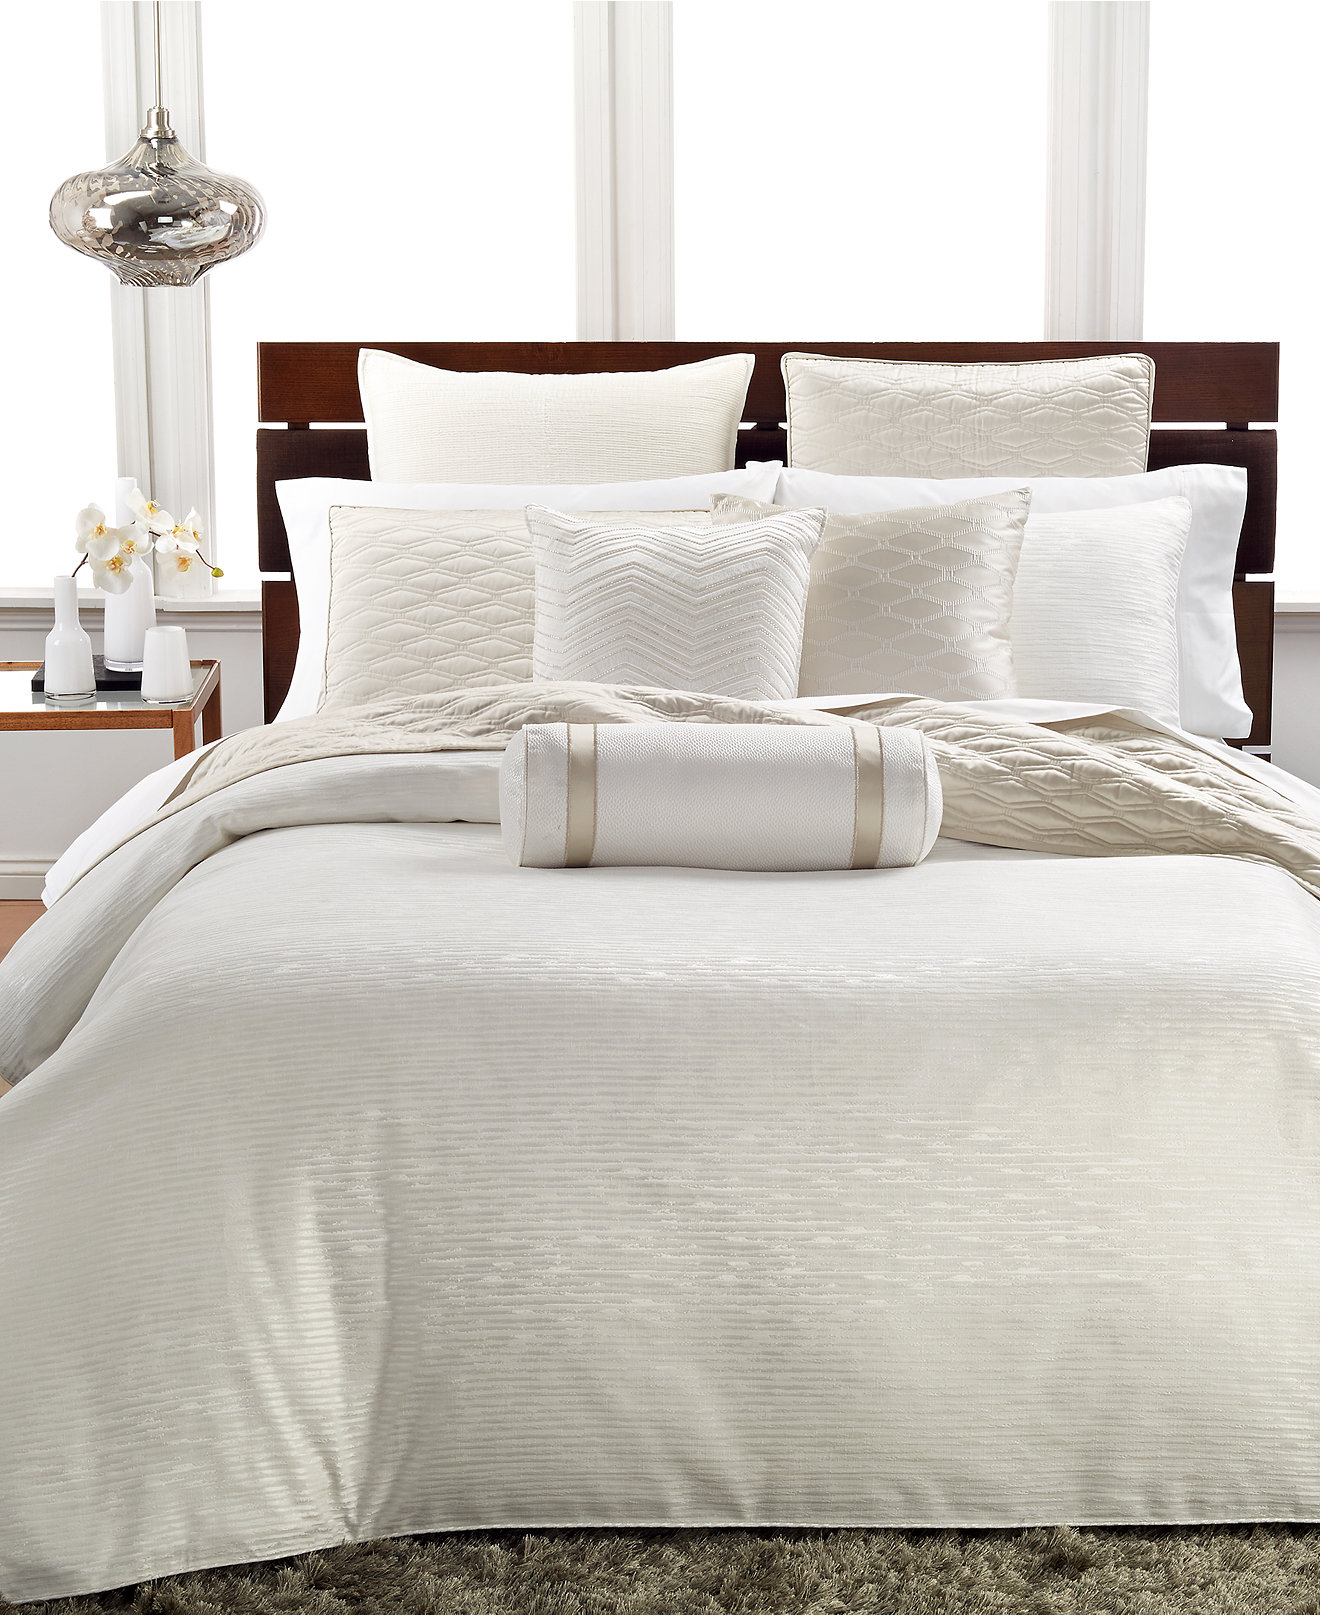 Bedspread designs texture - Hotel Collection Woven Texture Bedding Collection Created For Macy S Sale Clearance For The Home Macy S